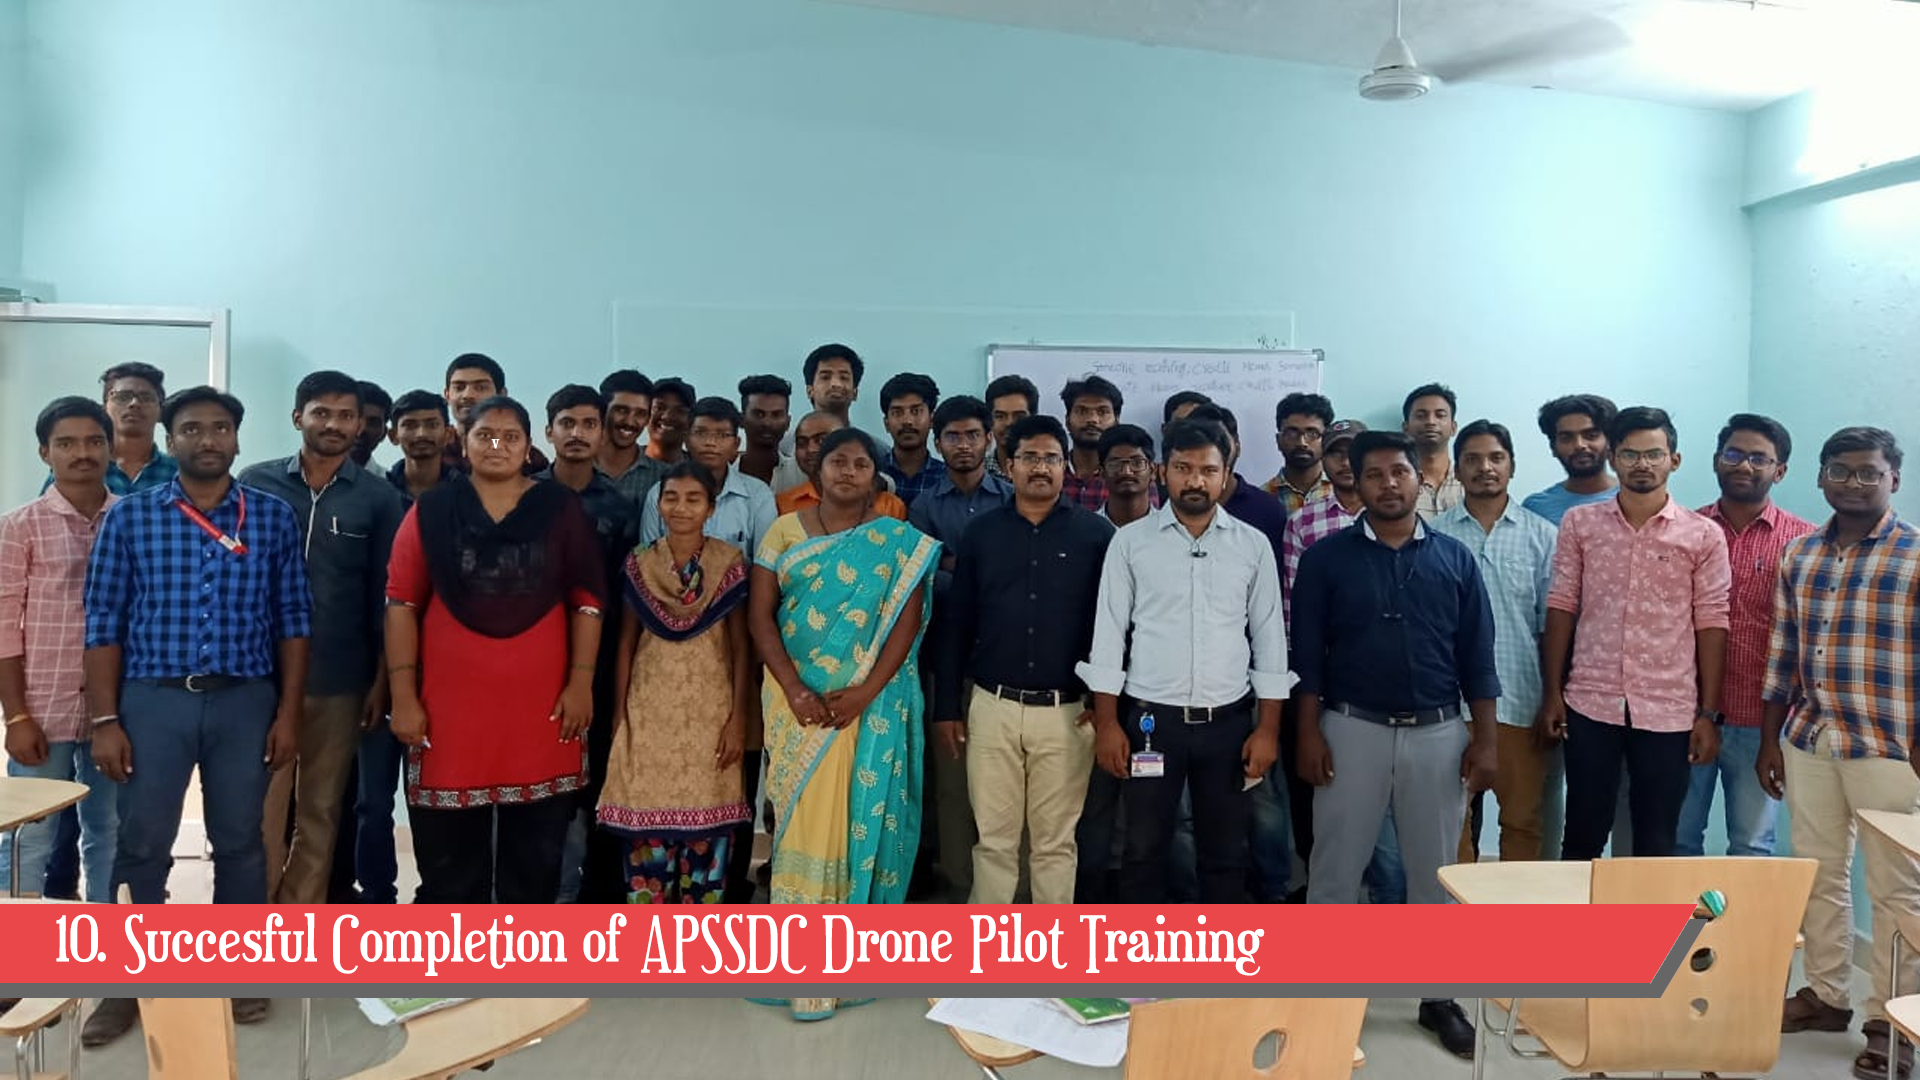 10. Succesful Completion of APSSDC Drone Pilot Training